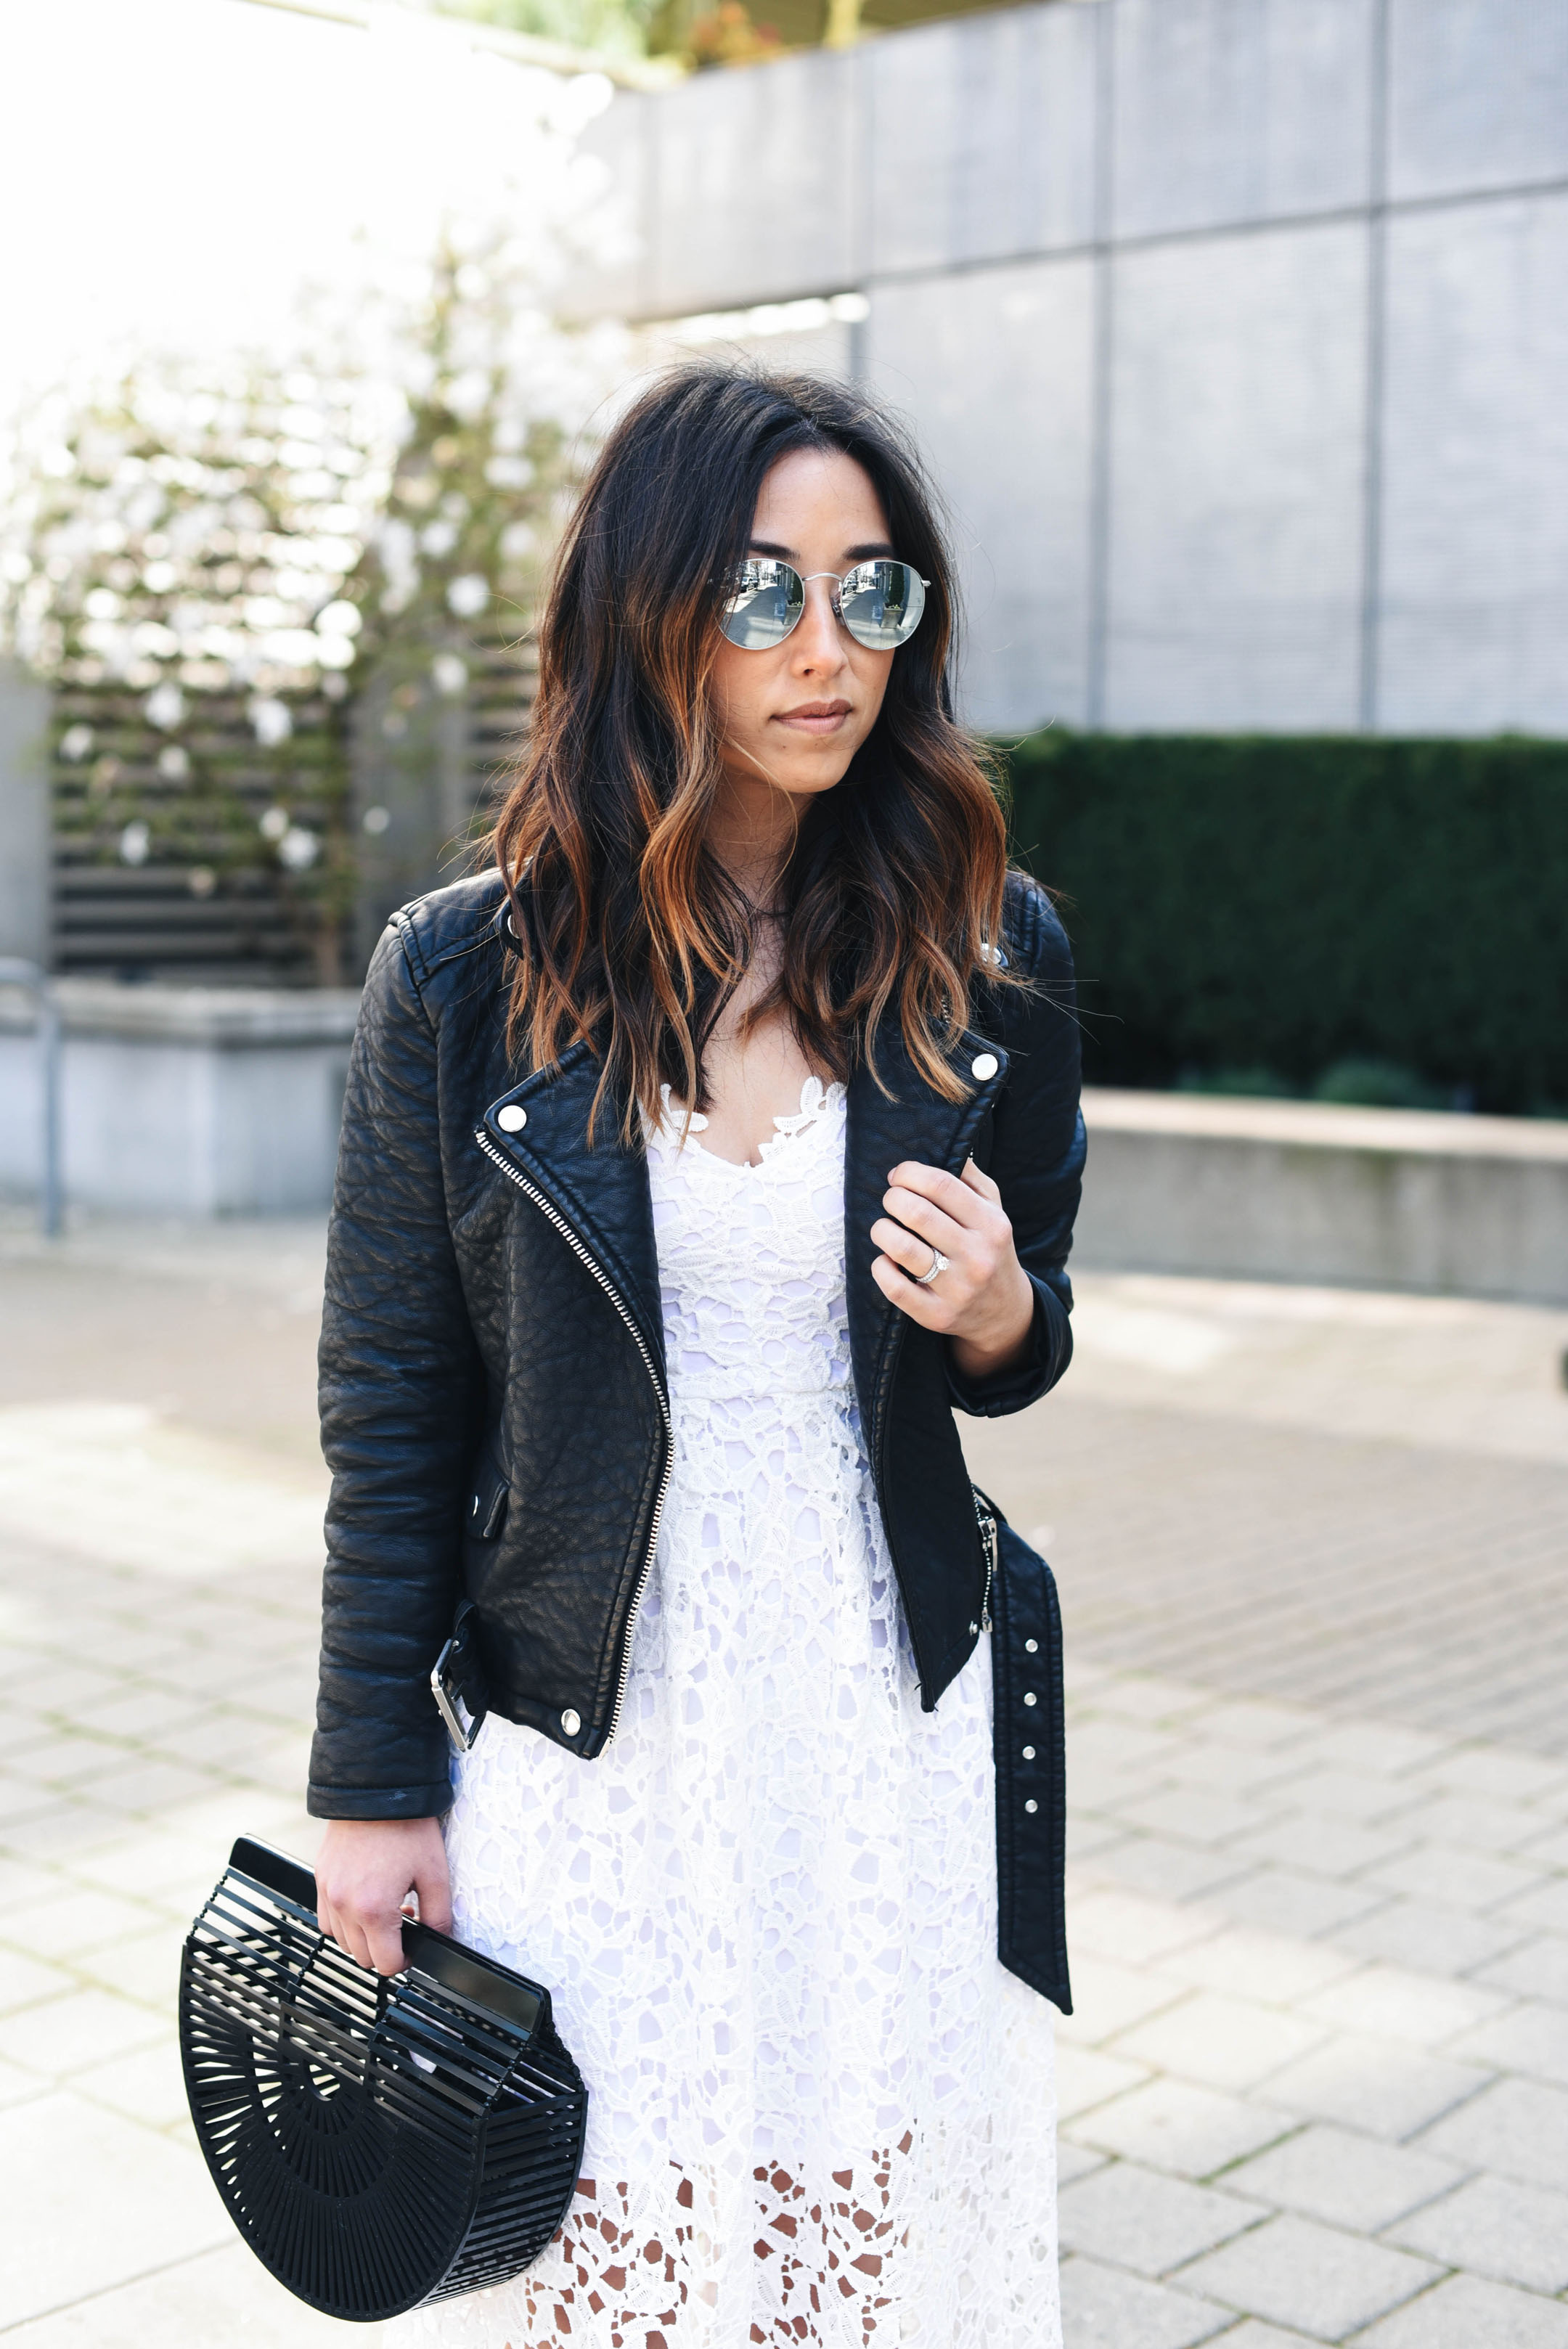 Ray-Ban rounded mirrored sunglasses